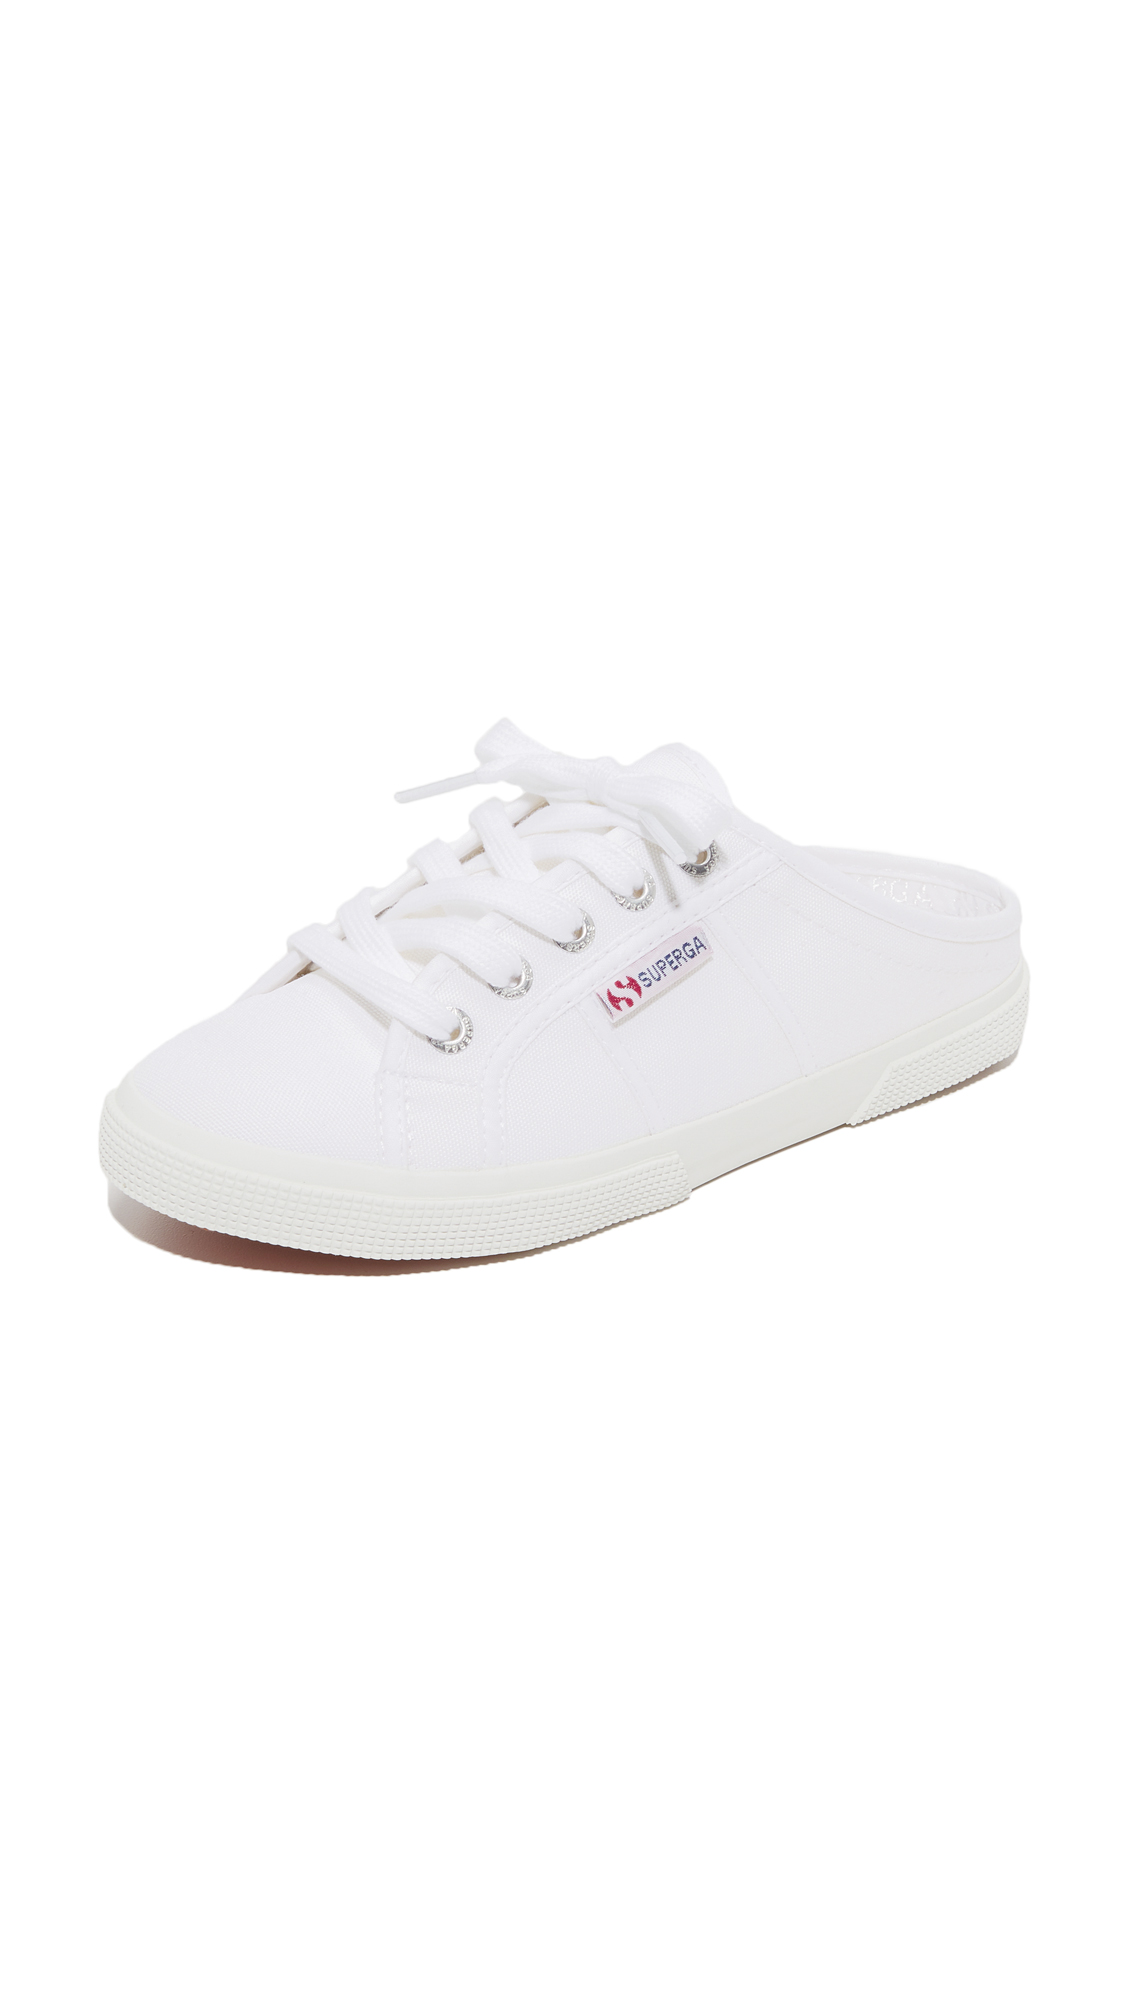 Superga 2288 Mule Sneakers - White